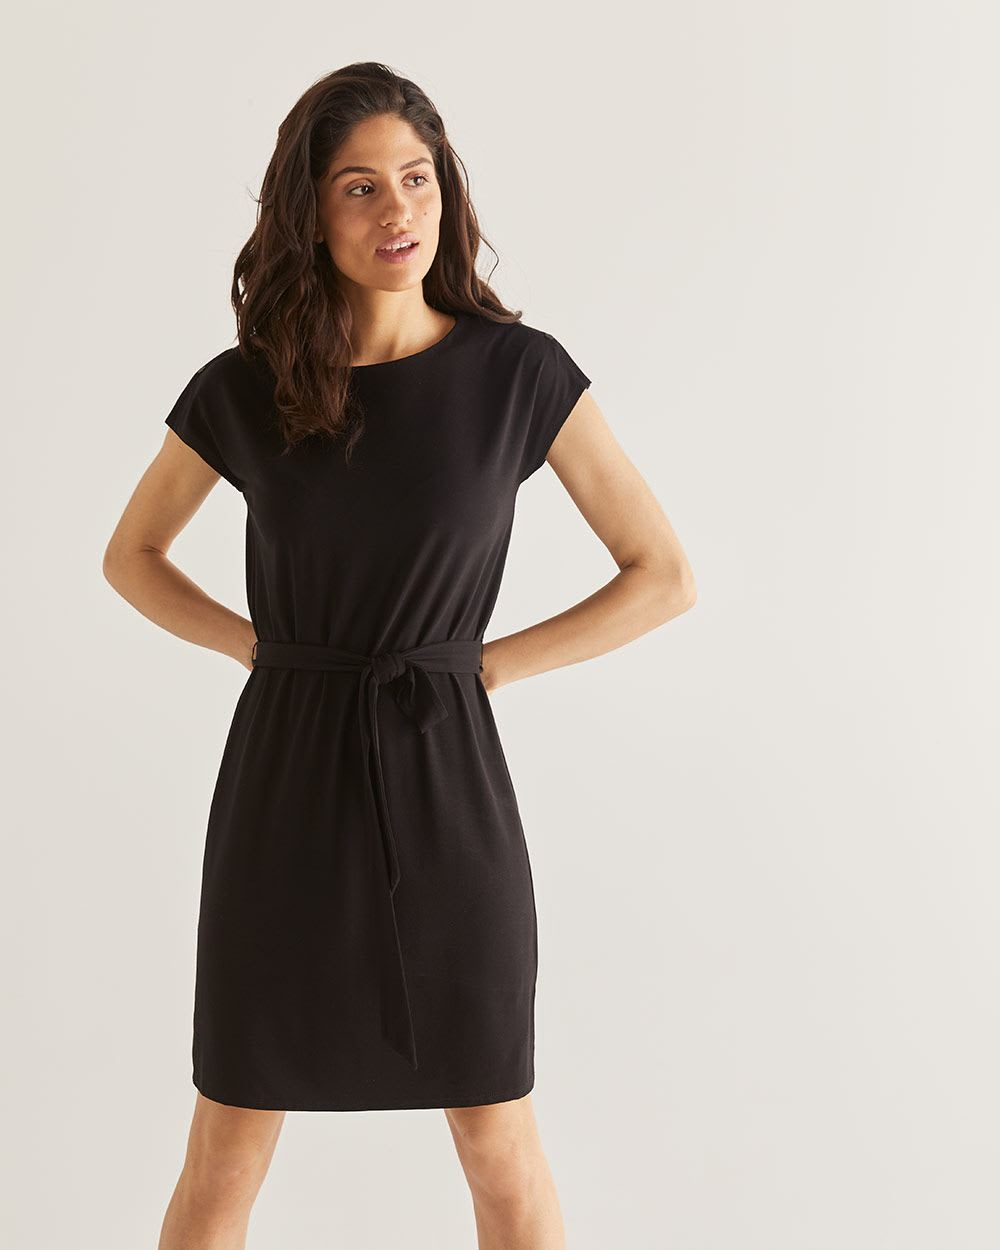 Self-Belted Black Shift Dress